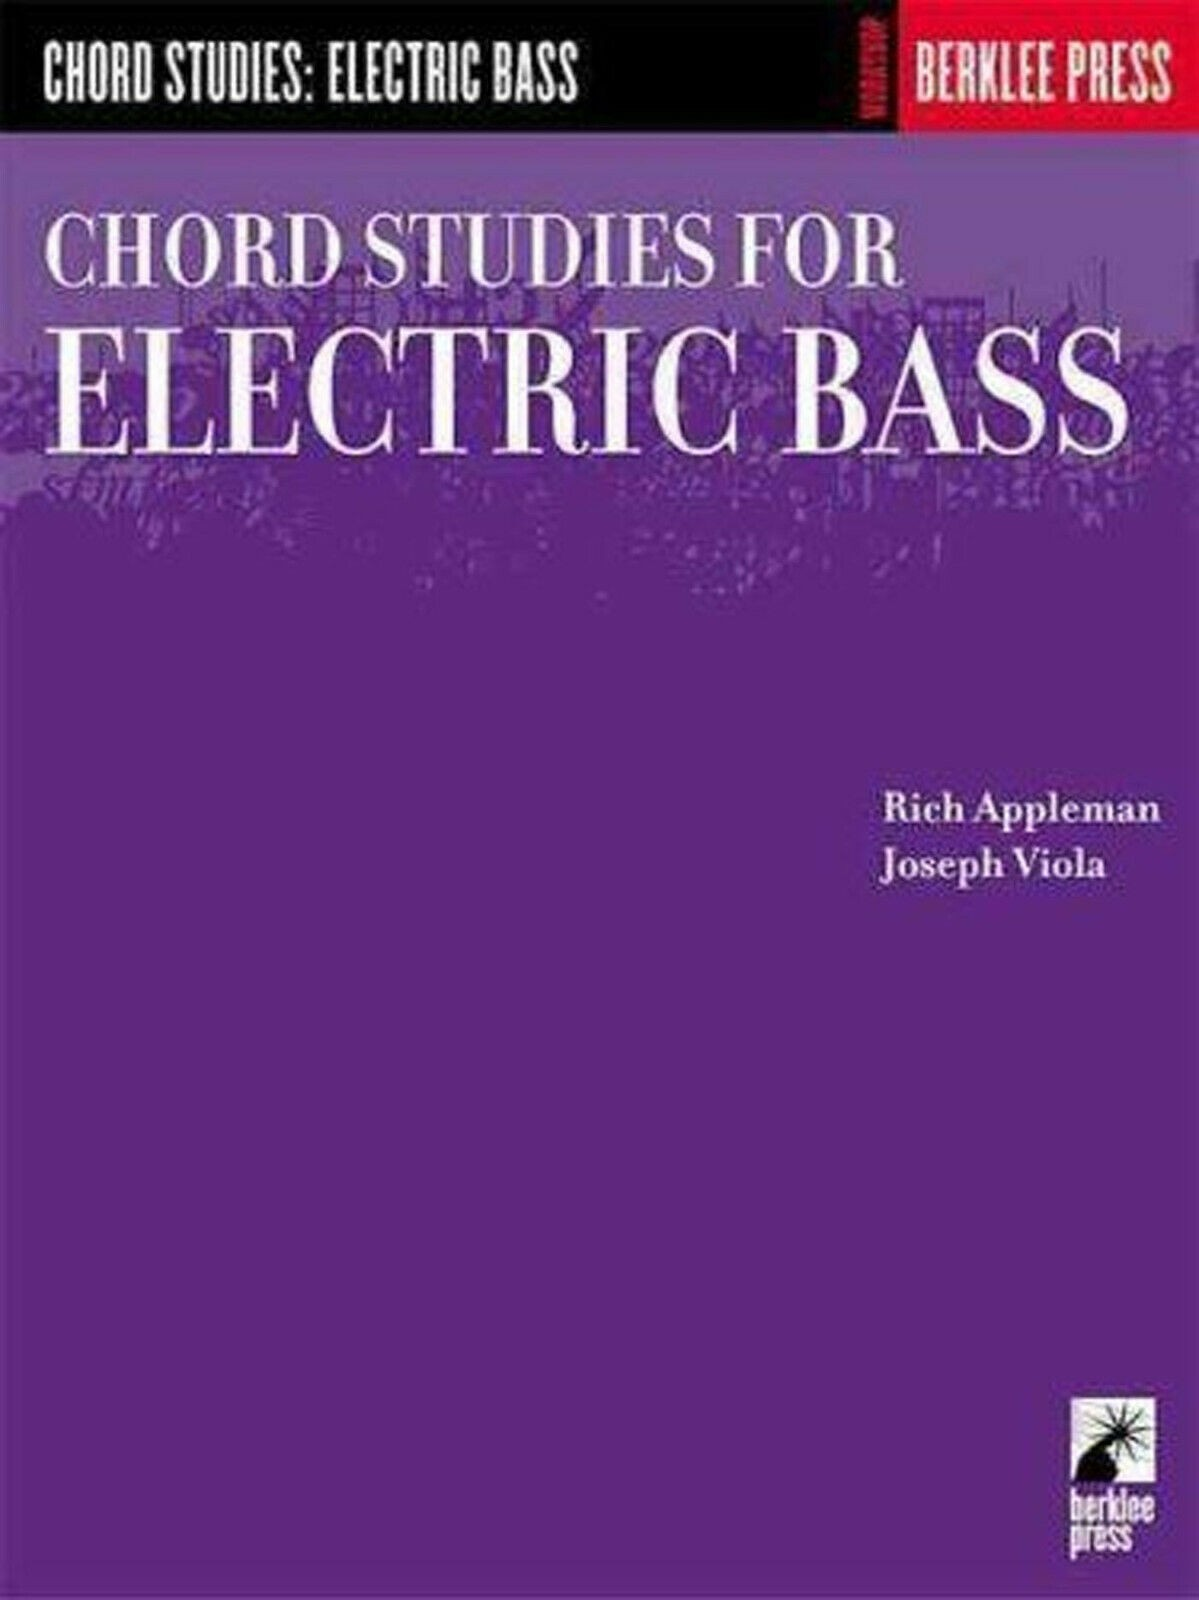 Chord Studies for Electric Bass Berklee Workshop Music Book Applebaum Viola S04